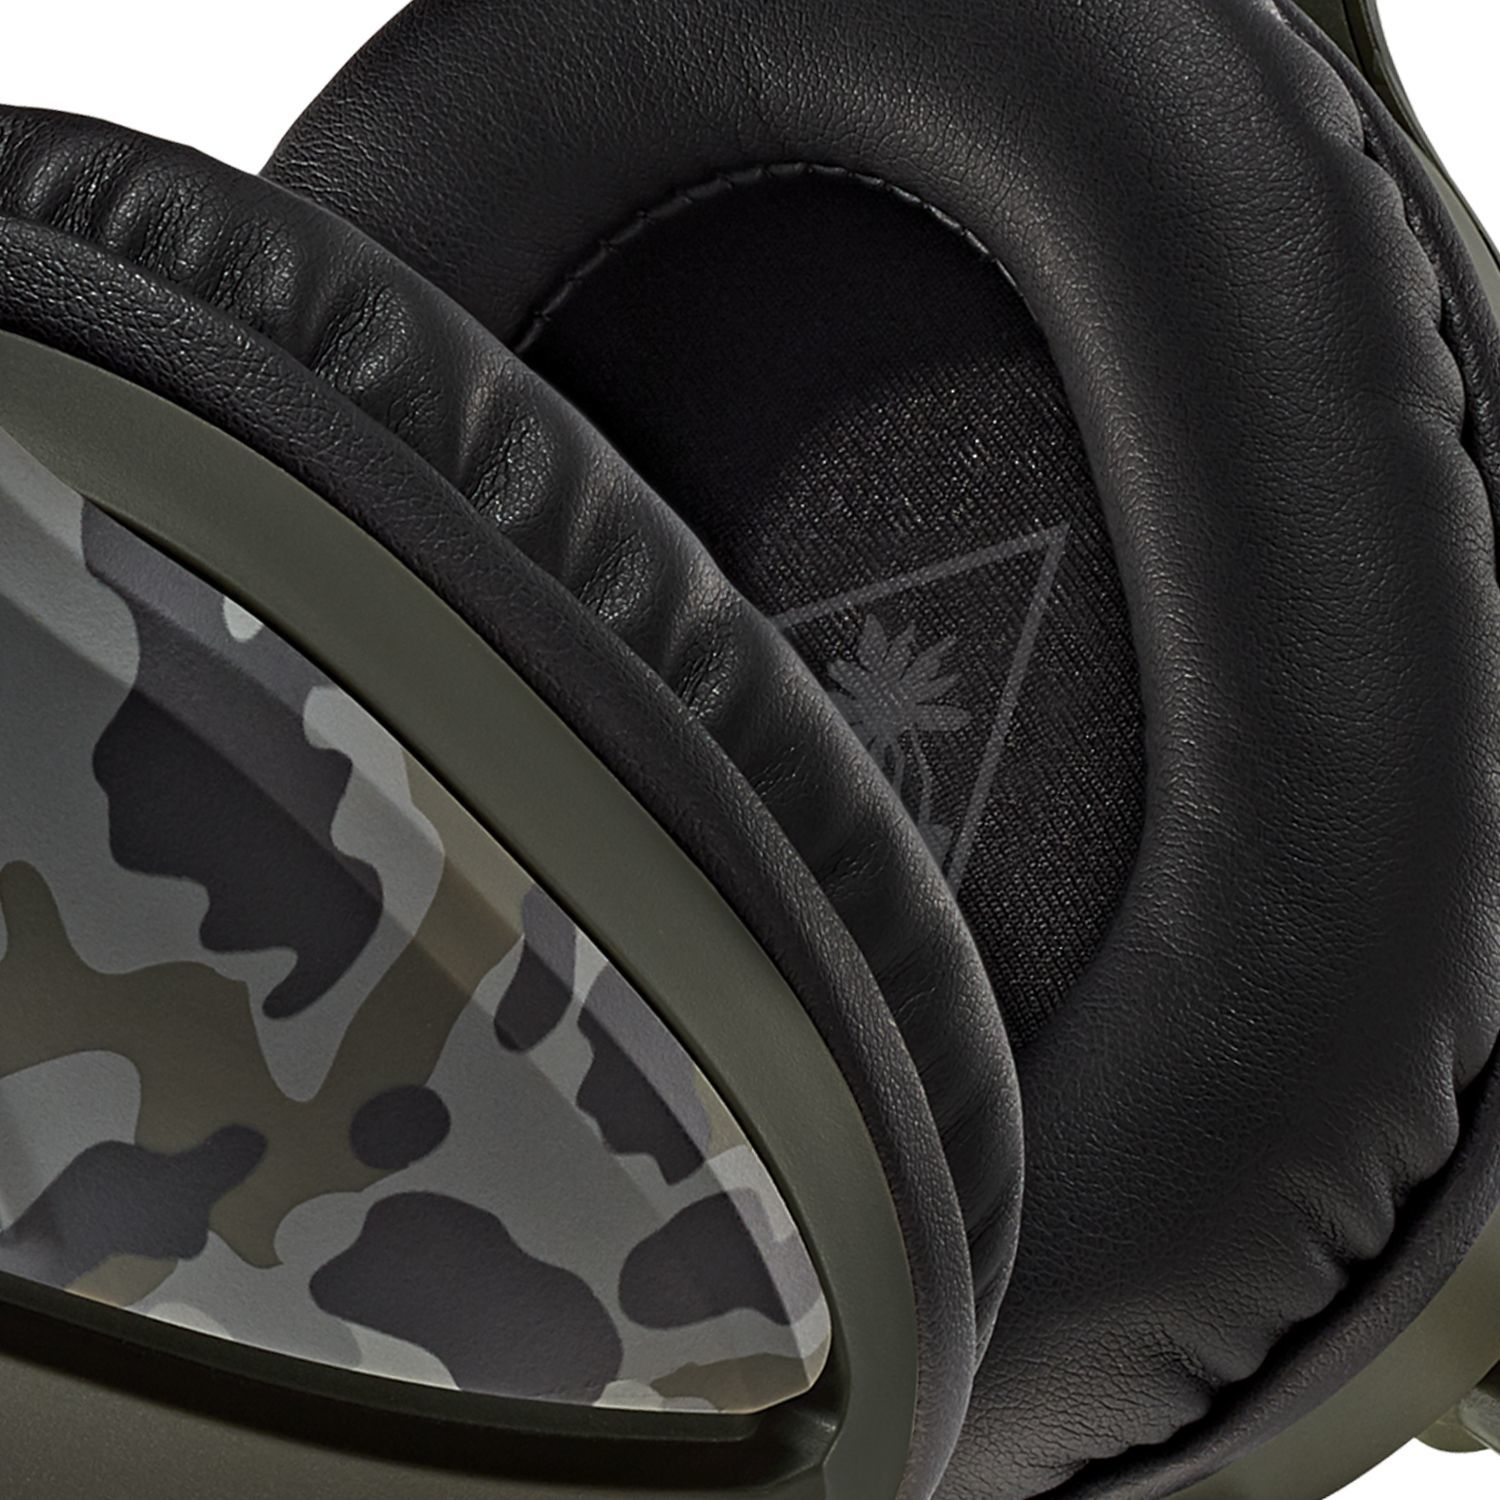 Turtle Beach Ear Force Recon 70 Gaming Headset - Camo Green for PS4 image